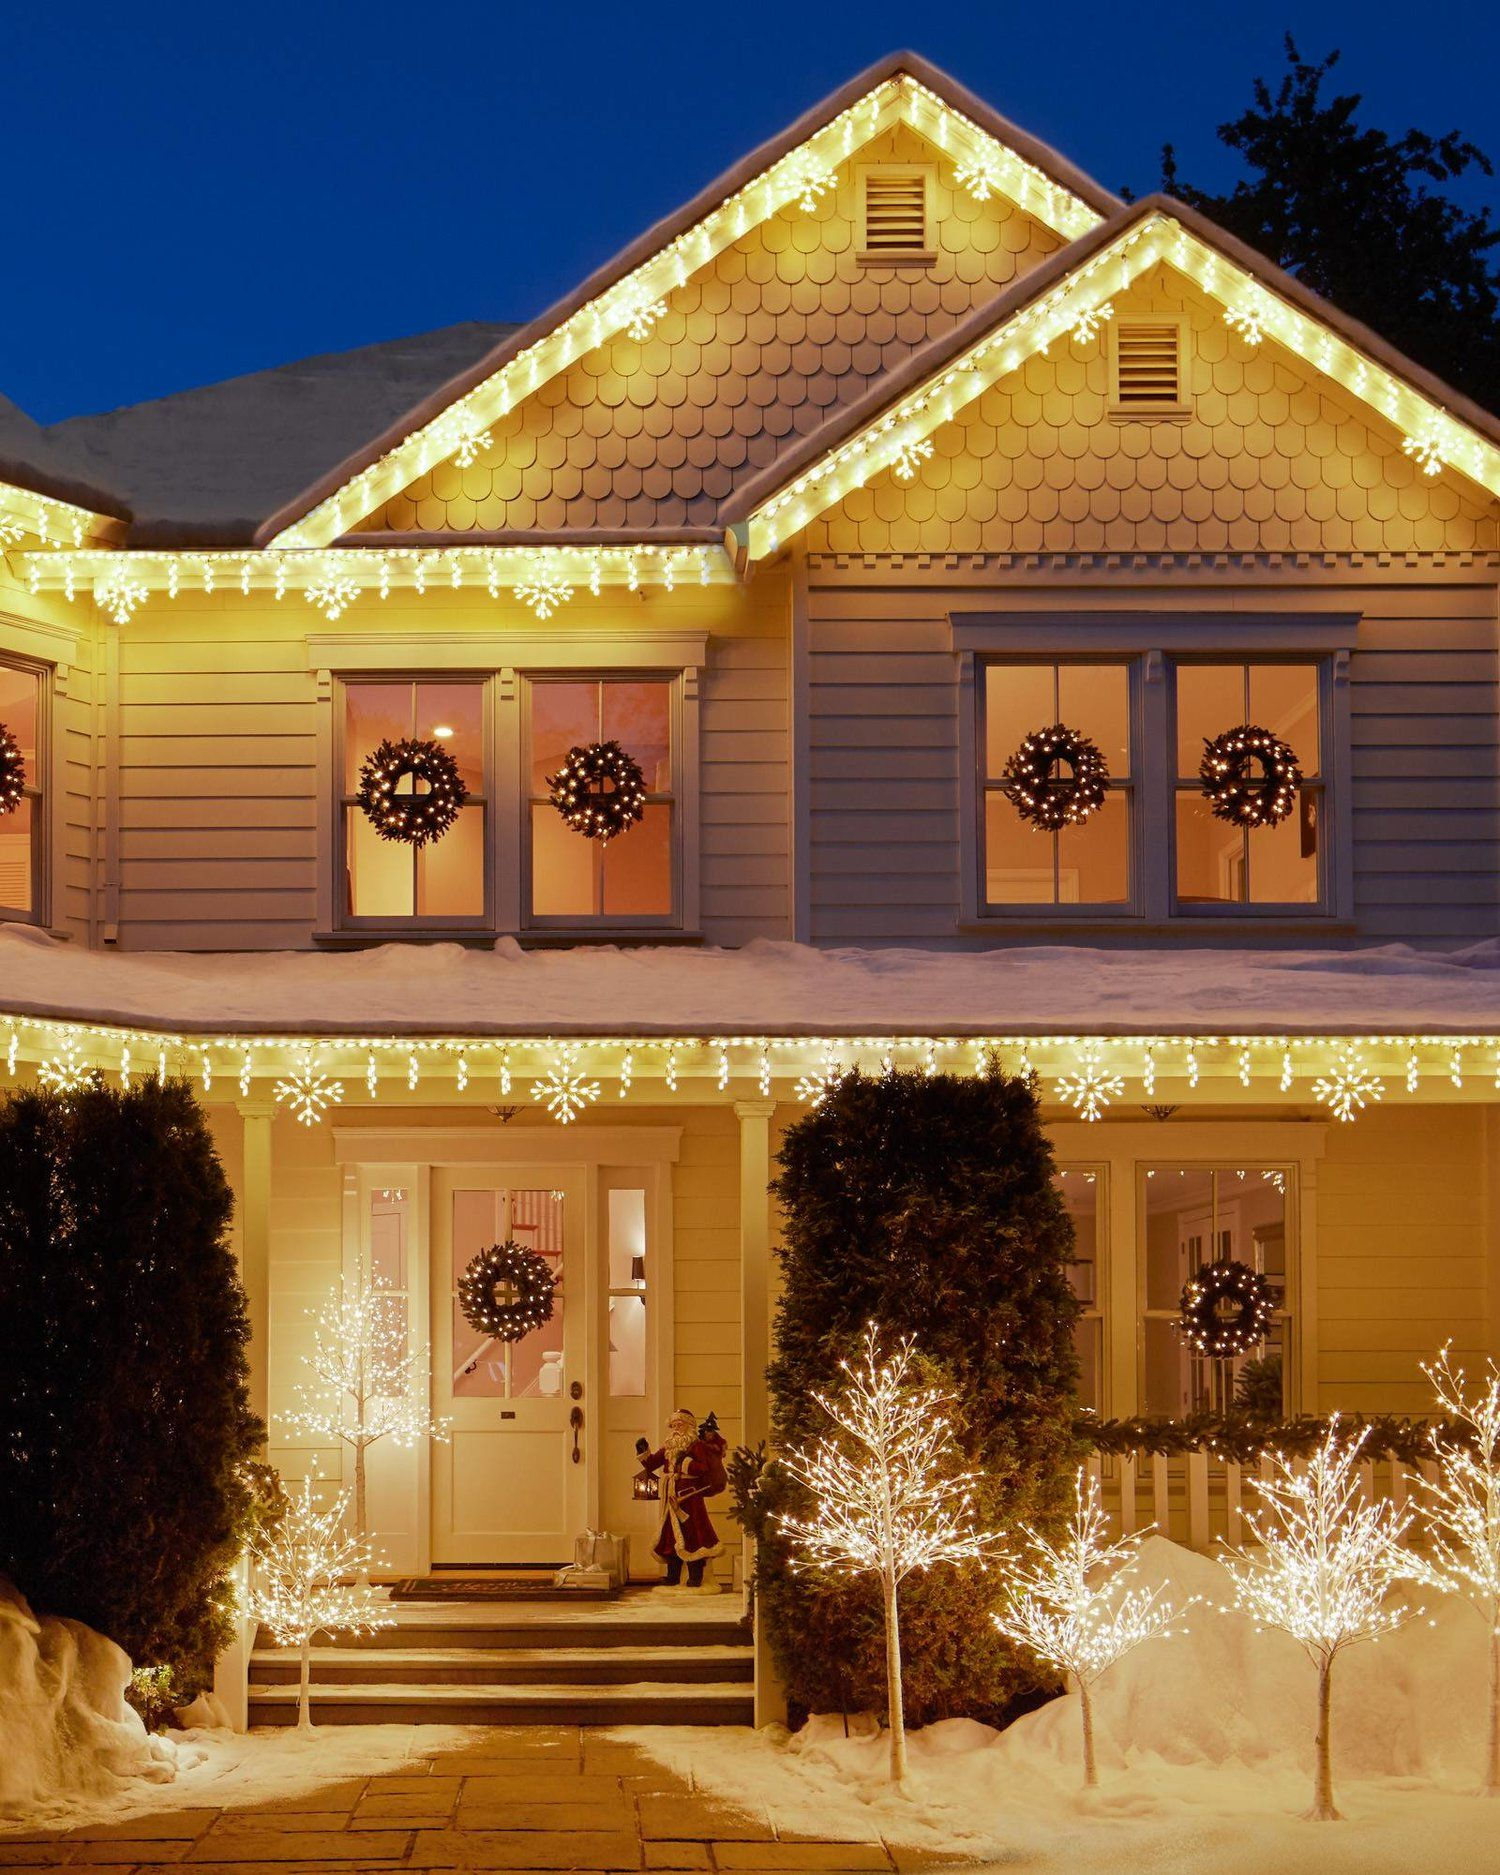 15 Magical Outdoor Christmas Decorations BalsamHill With i